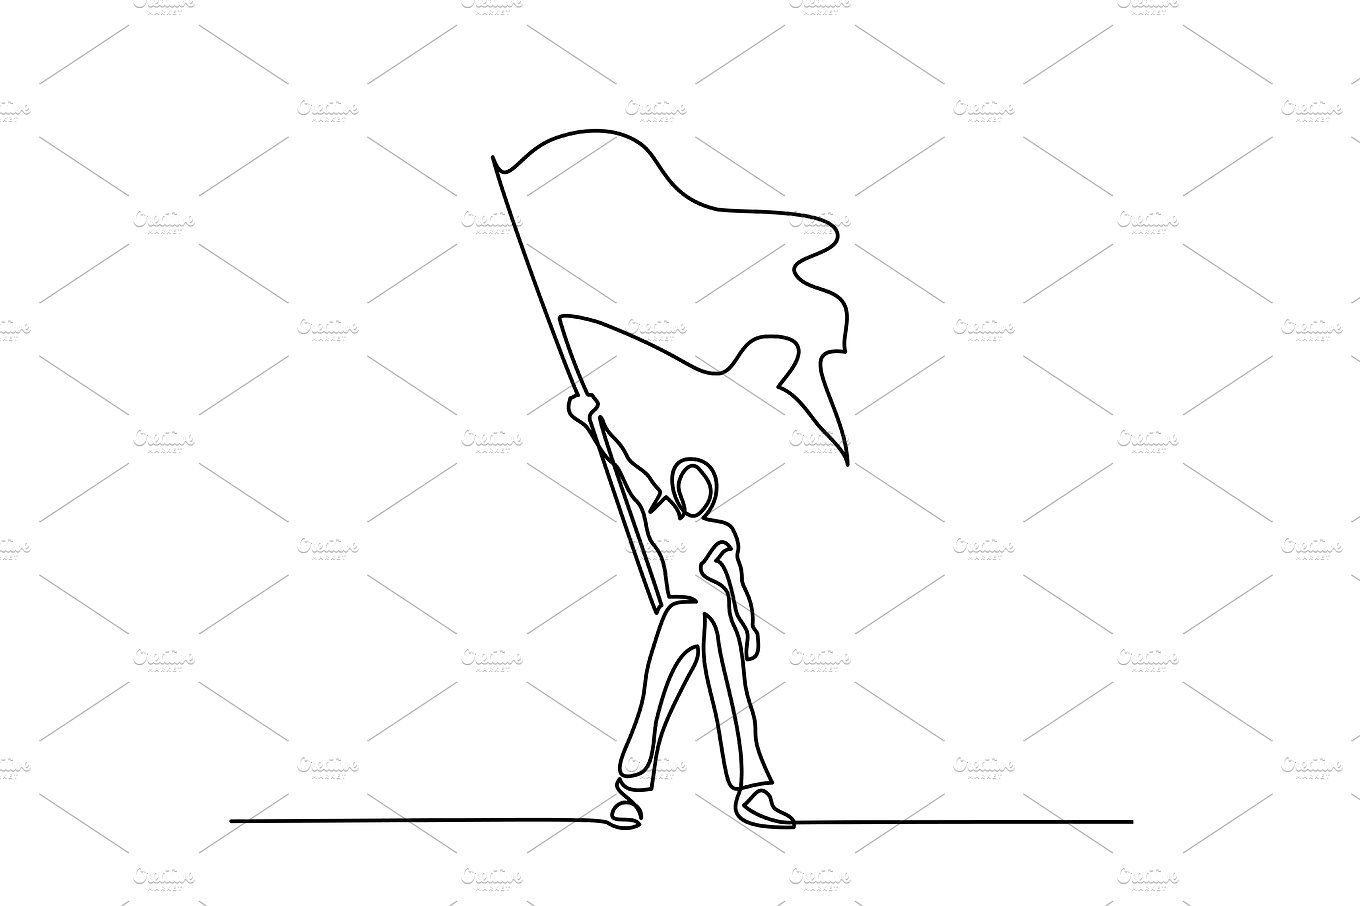 Man Holding Flag Flag Drawing Color Pencil Drawing Continuous